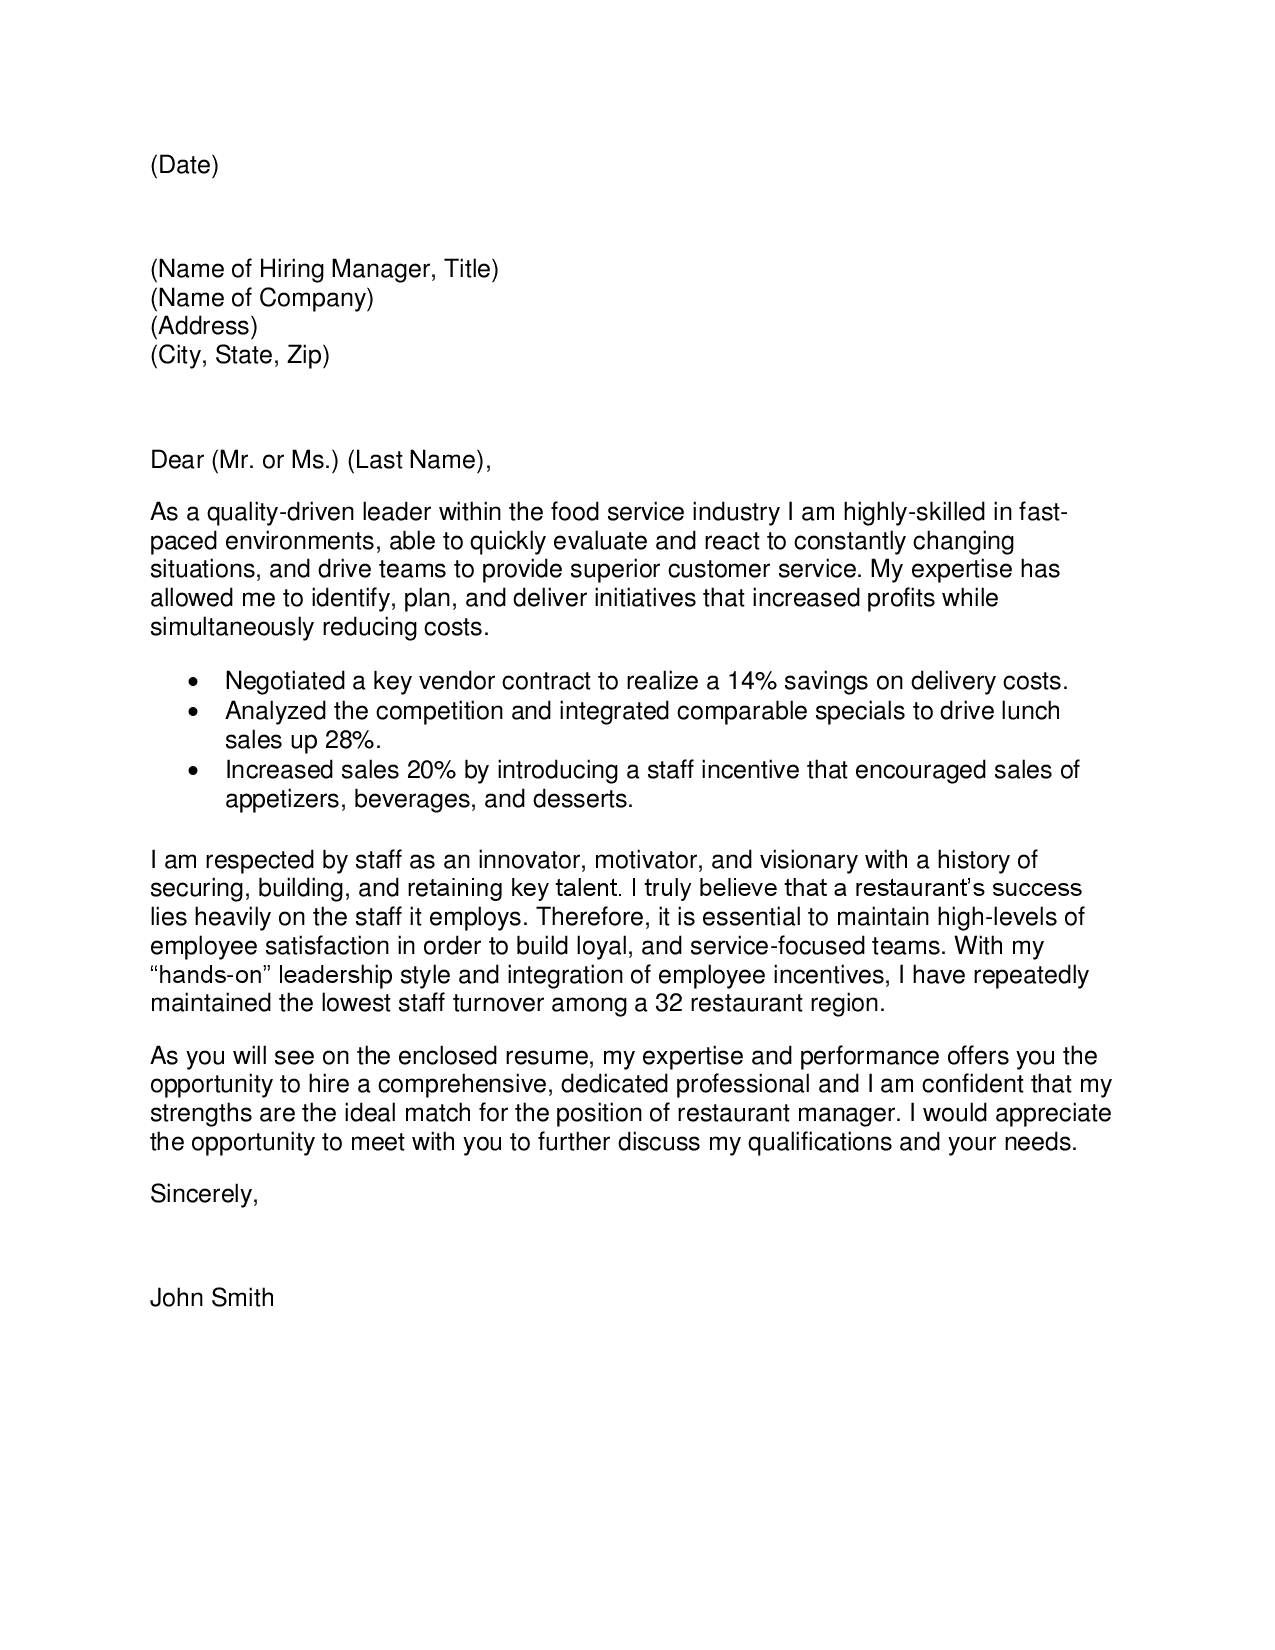 sales and marketing cover letters - Template - Template sales and marketing cover letters